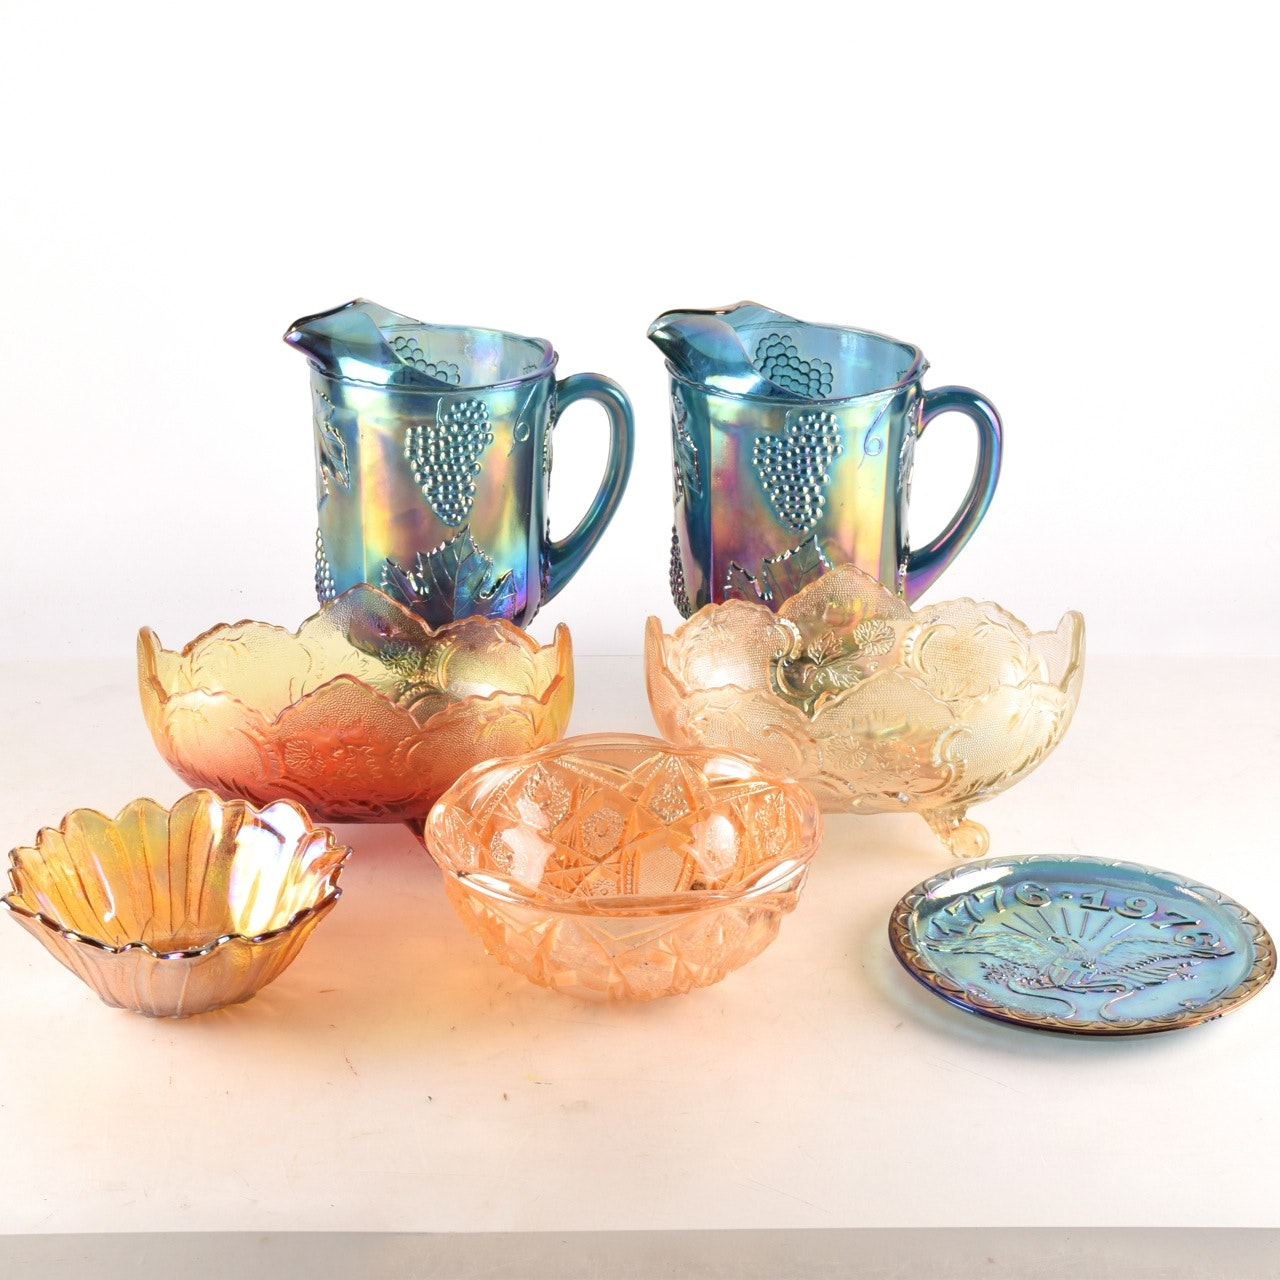 Iridescent and Colorful Pressed Glassware